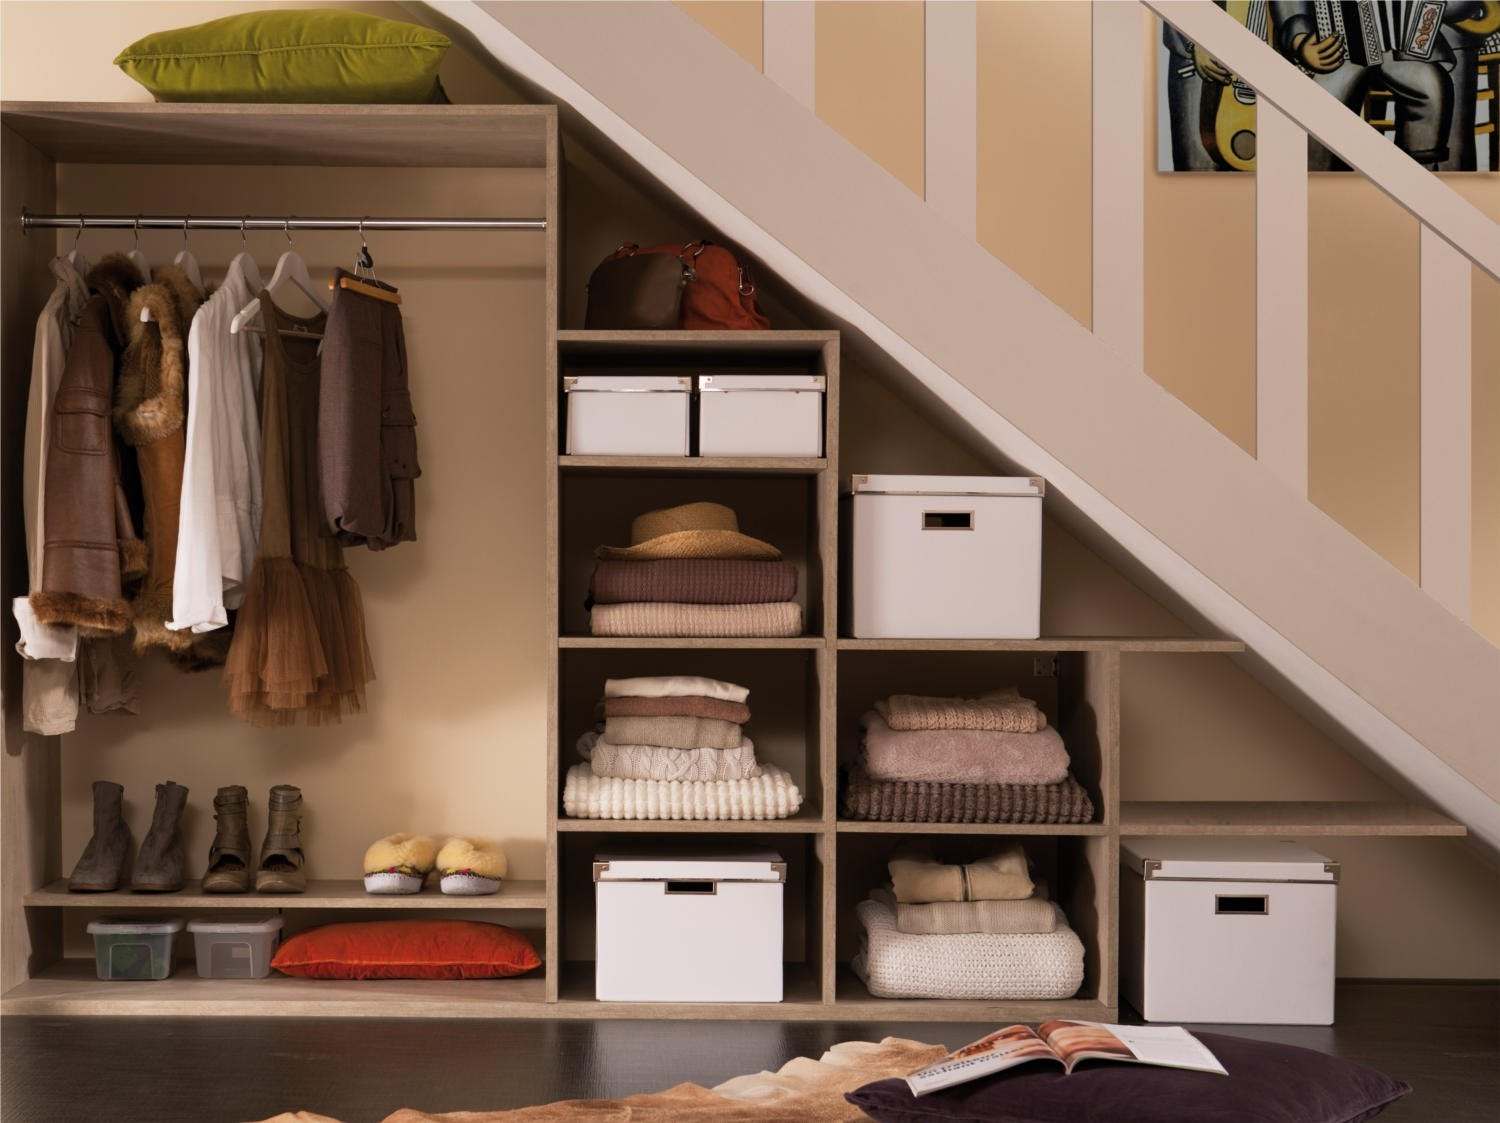 Cr er un espace dressing leroy merlin - Ikea creer son dressing ...